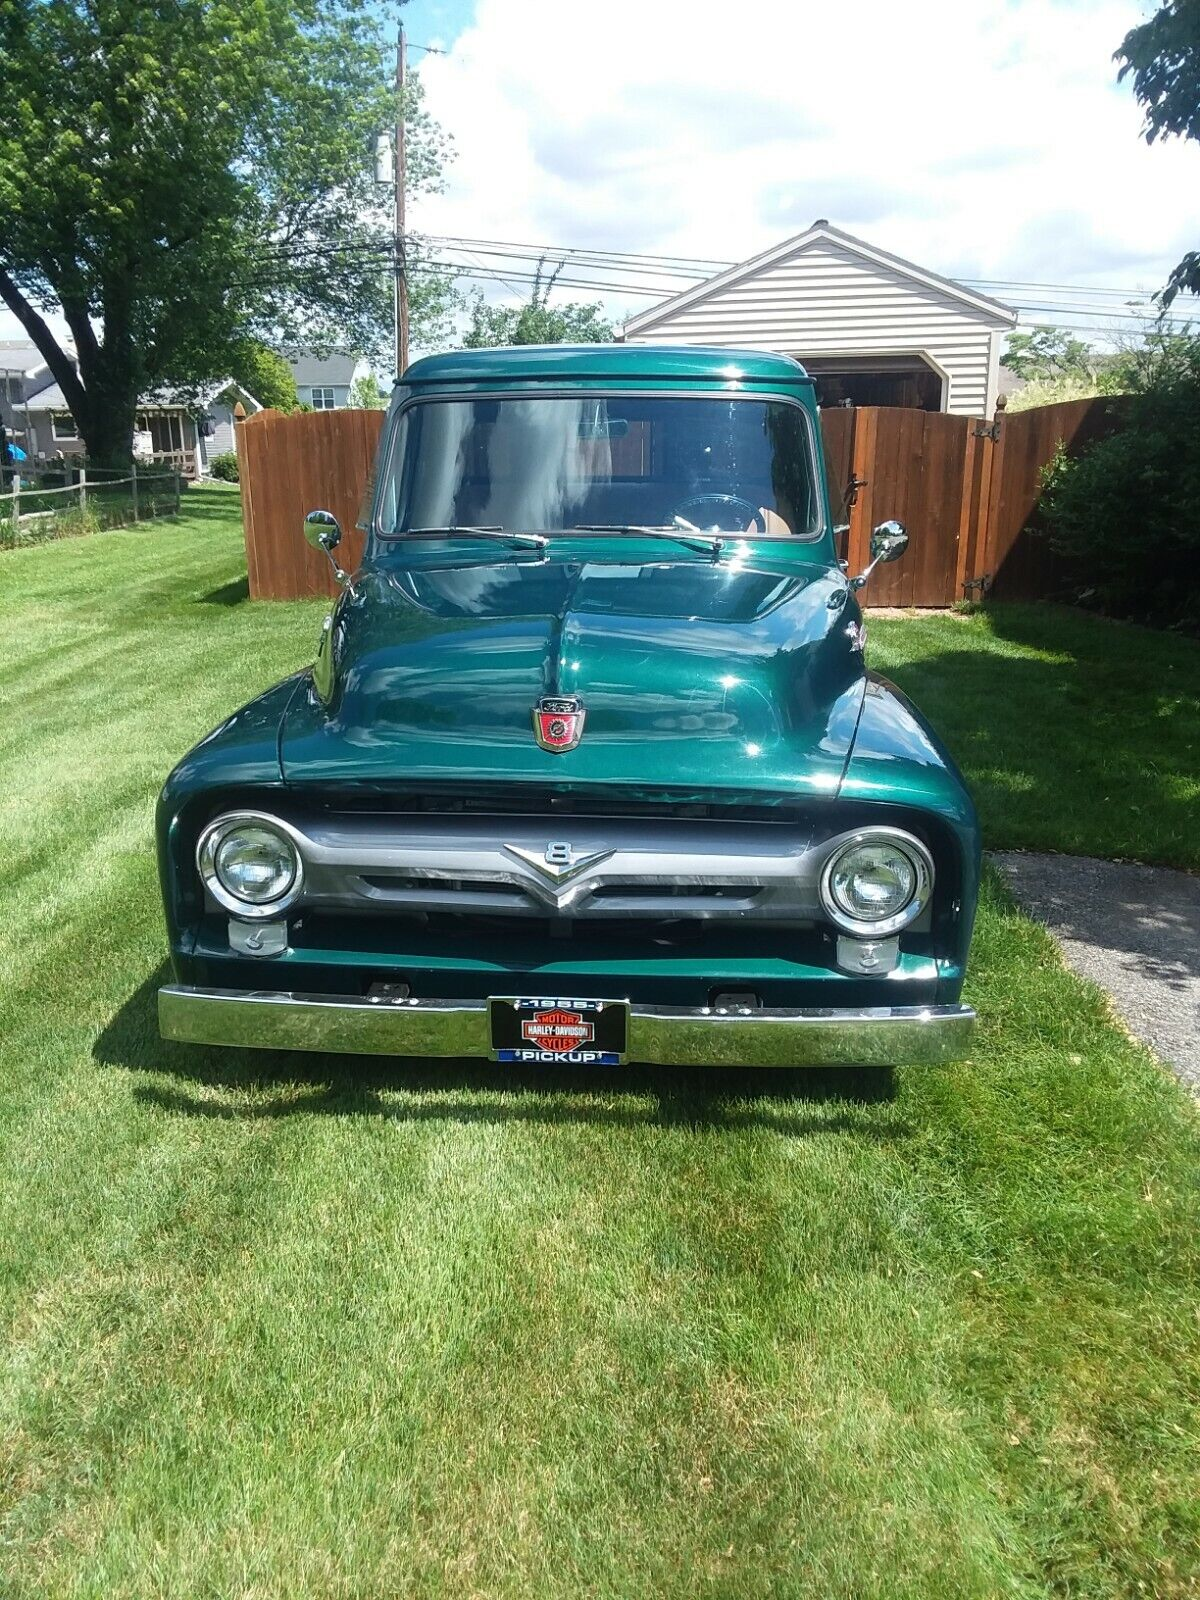 1955 ford f-100 pickup, Ford F-100, street rod, Hot Rod Other